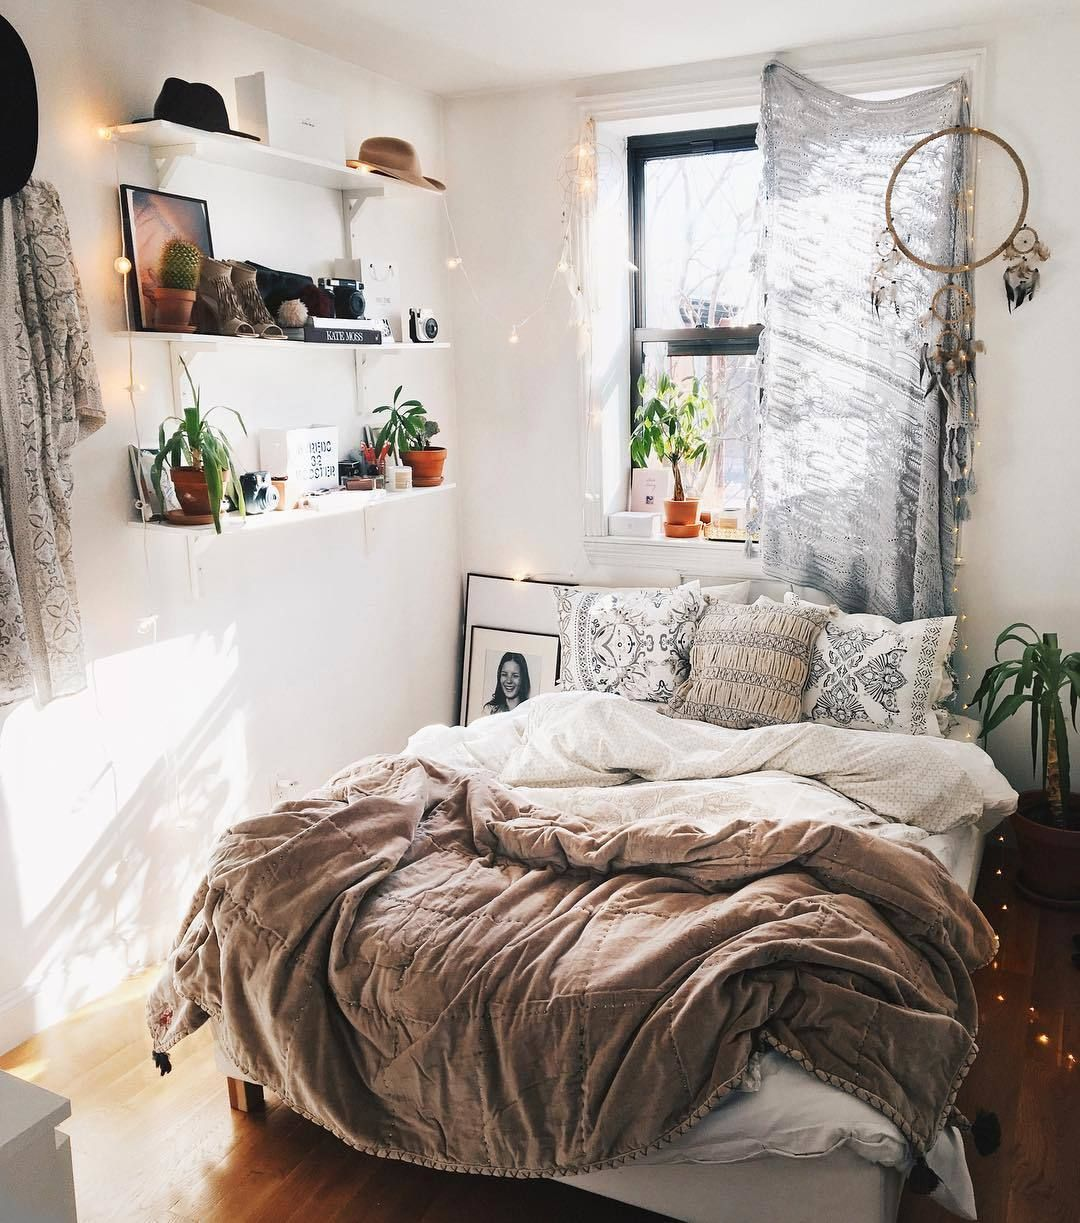 Design Your Own Bedroom App Brilliant Image Discoveredliliana Salazardiscover And Save Your Own Inspiration